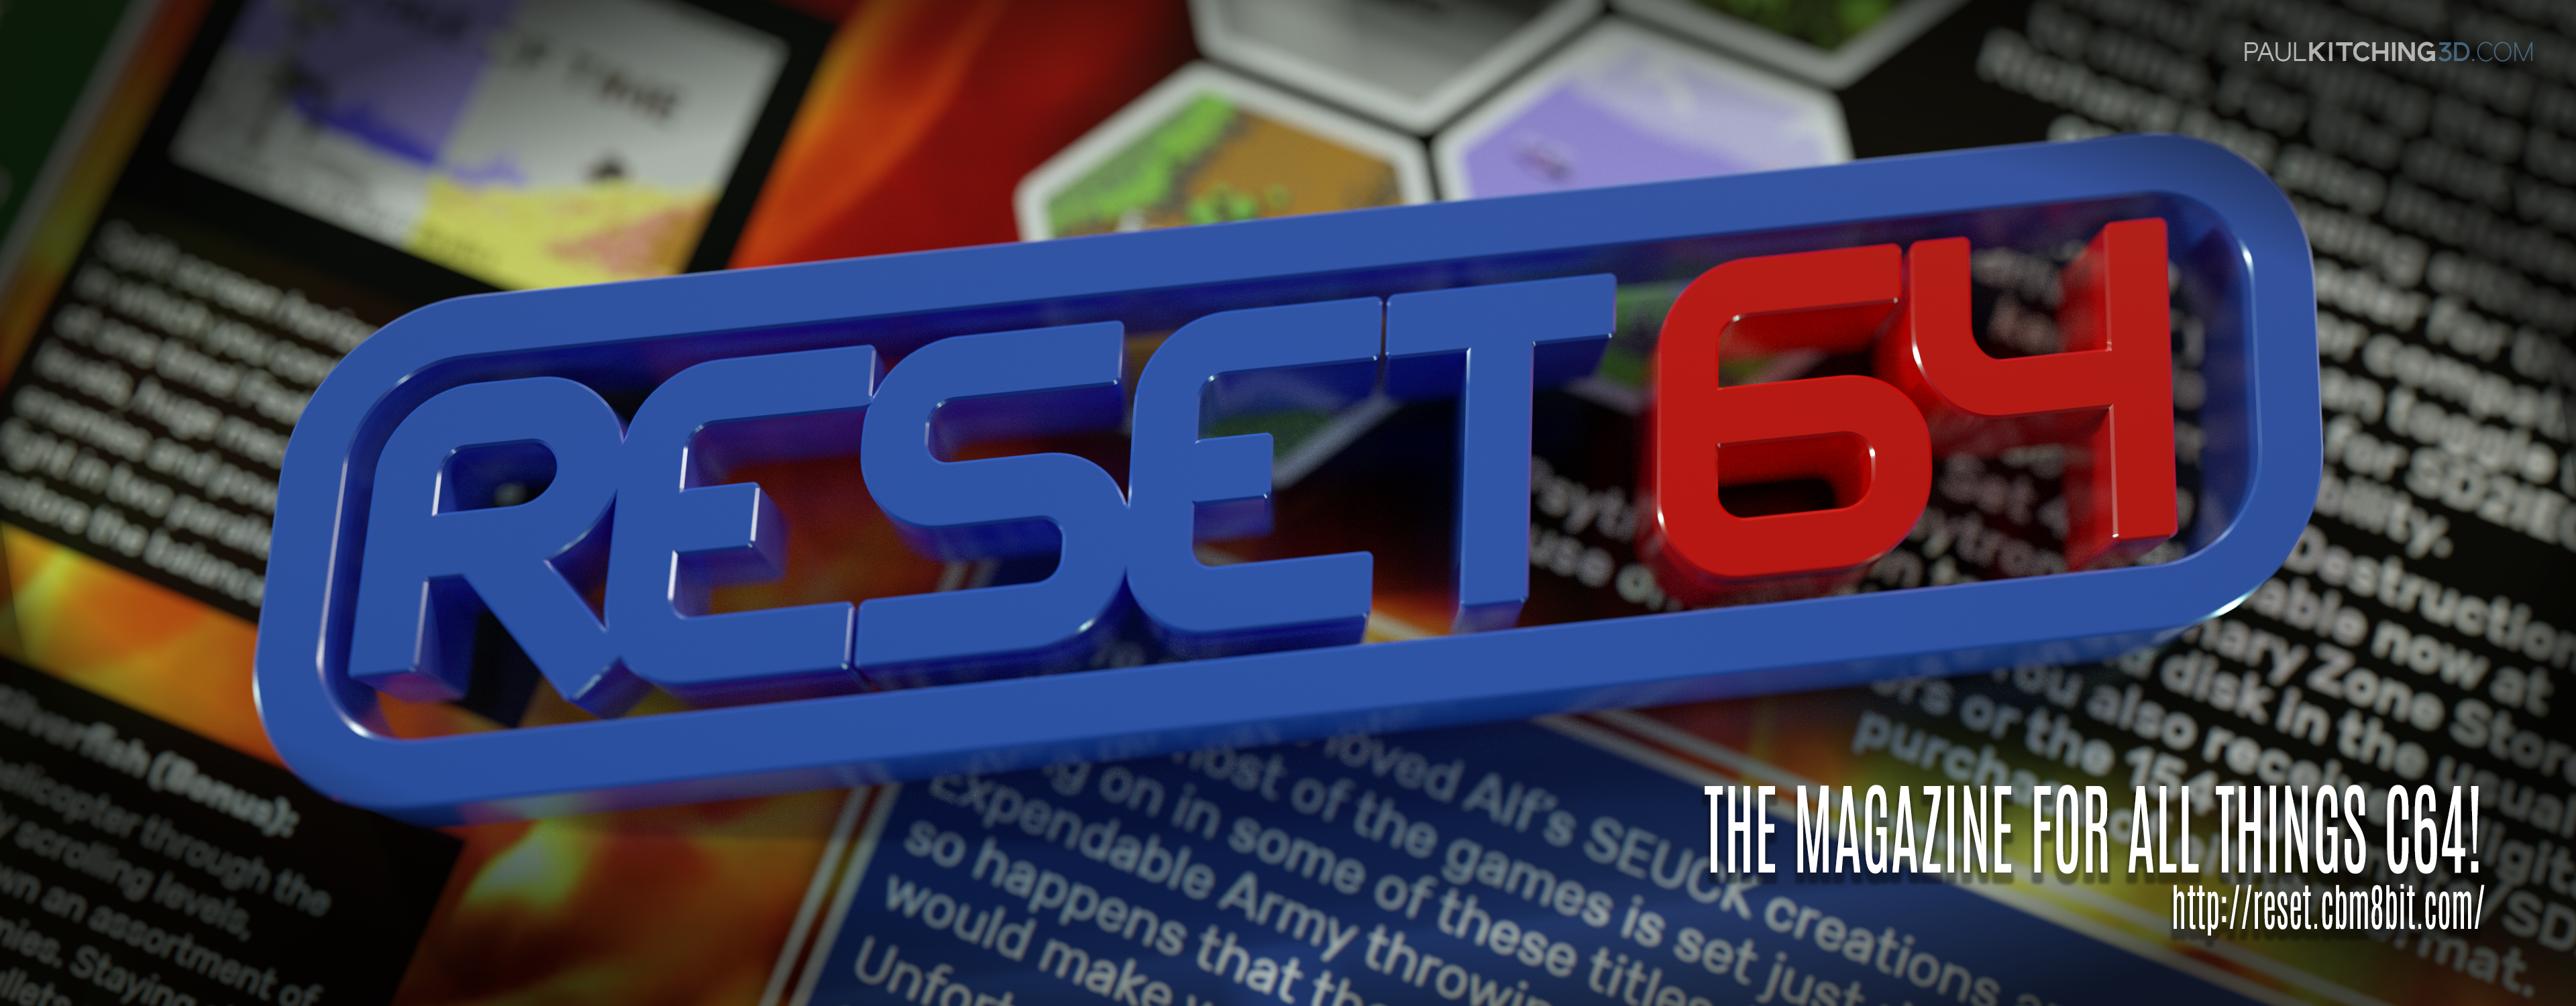 Reset #06 - March 2015